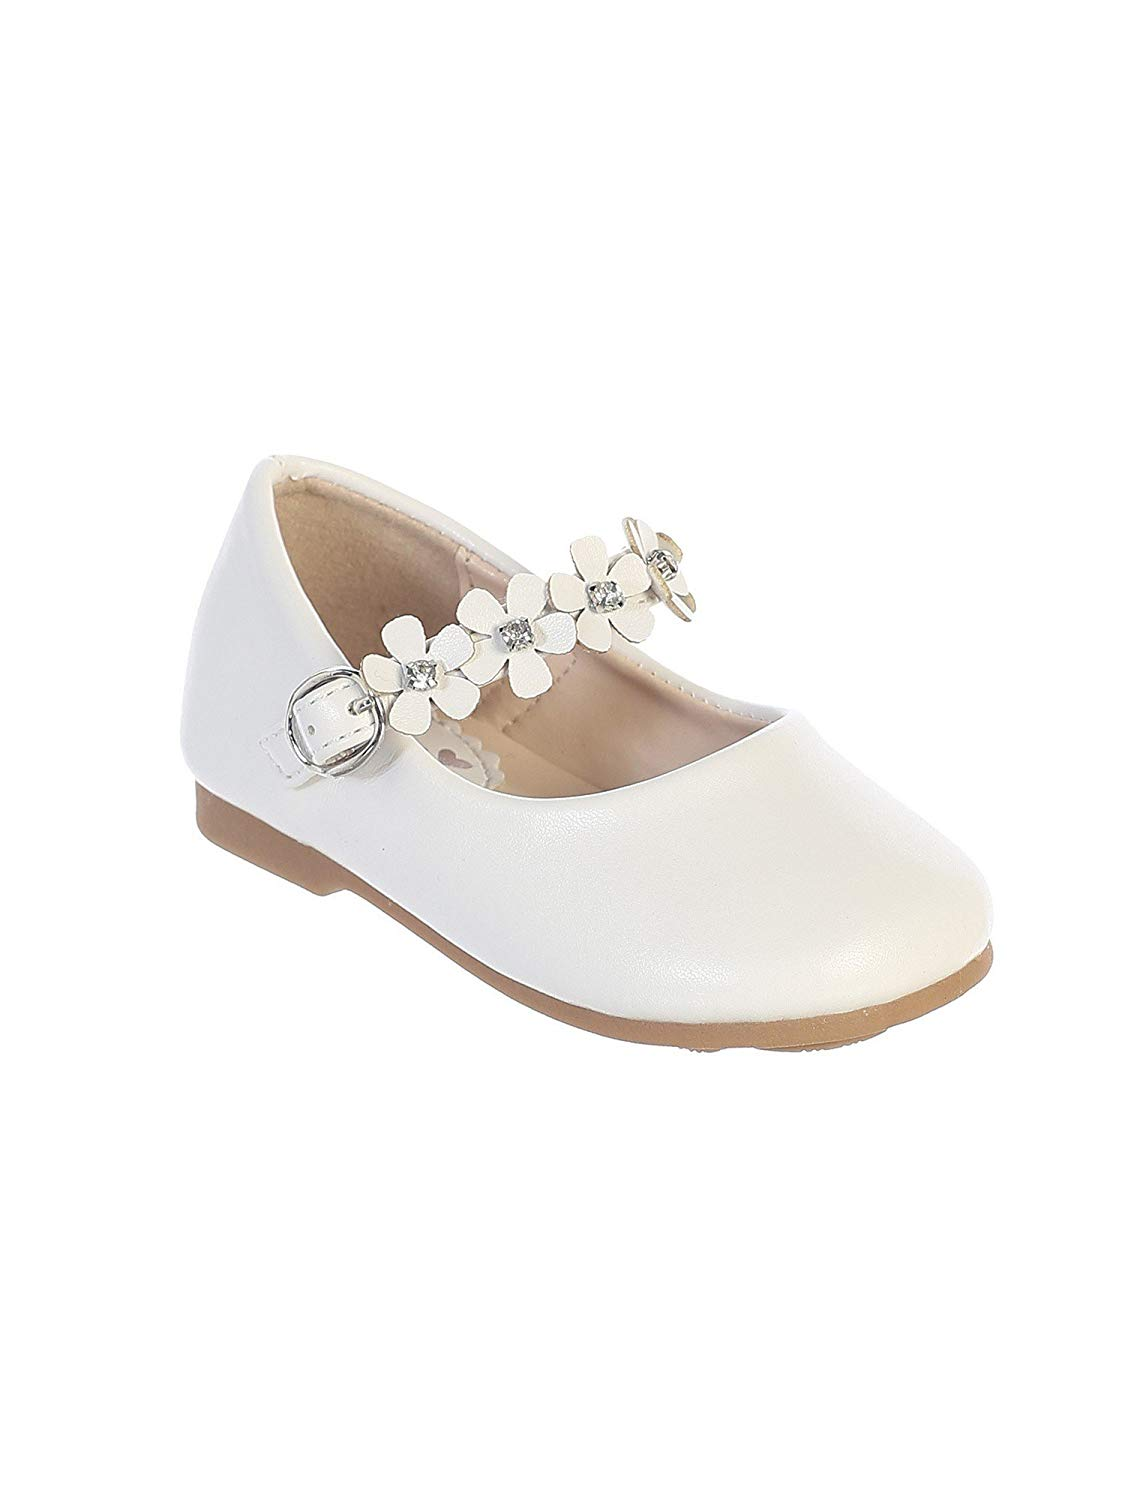 Cheap Girls White Mary Jane Shoes Find Girls White Mary Jane Shoes